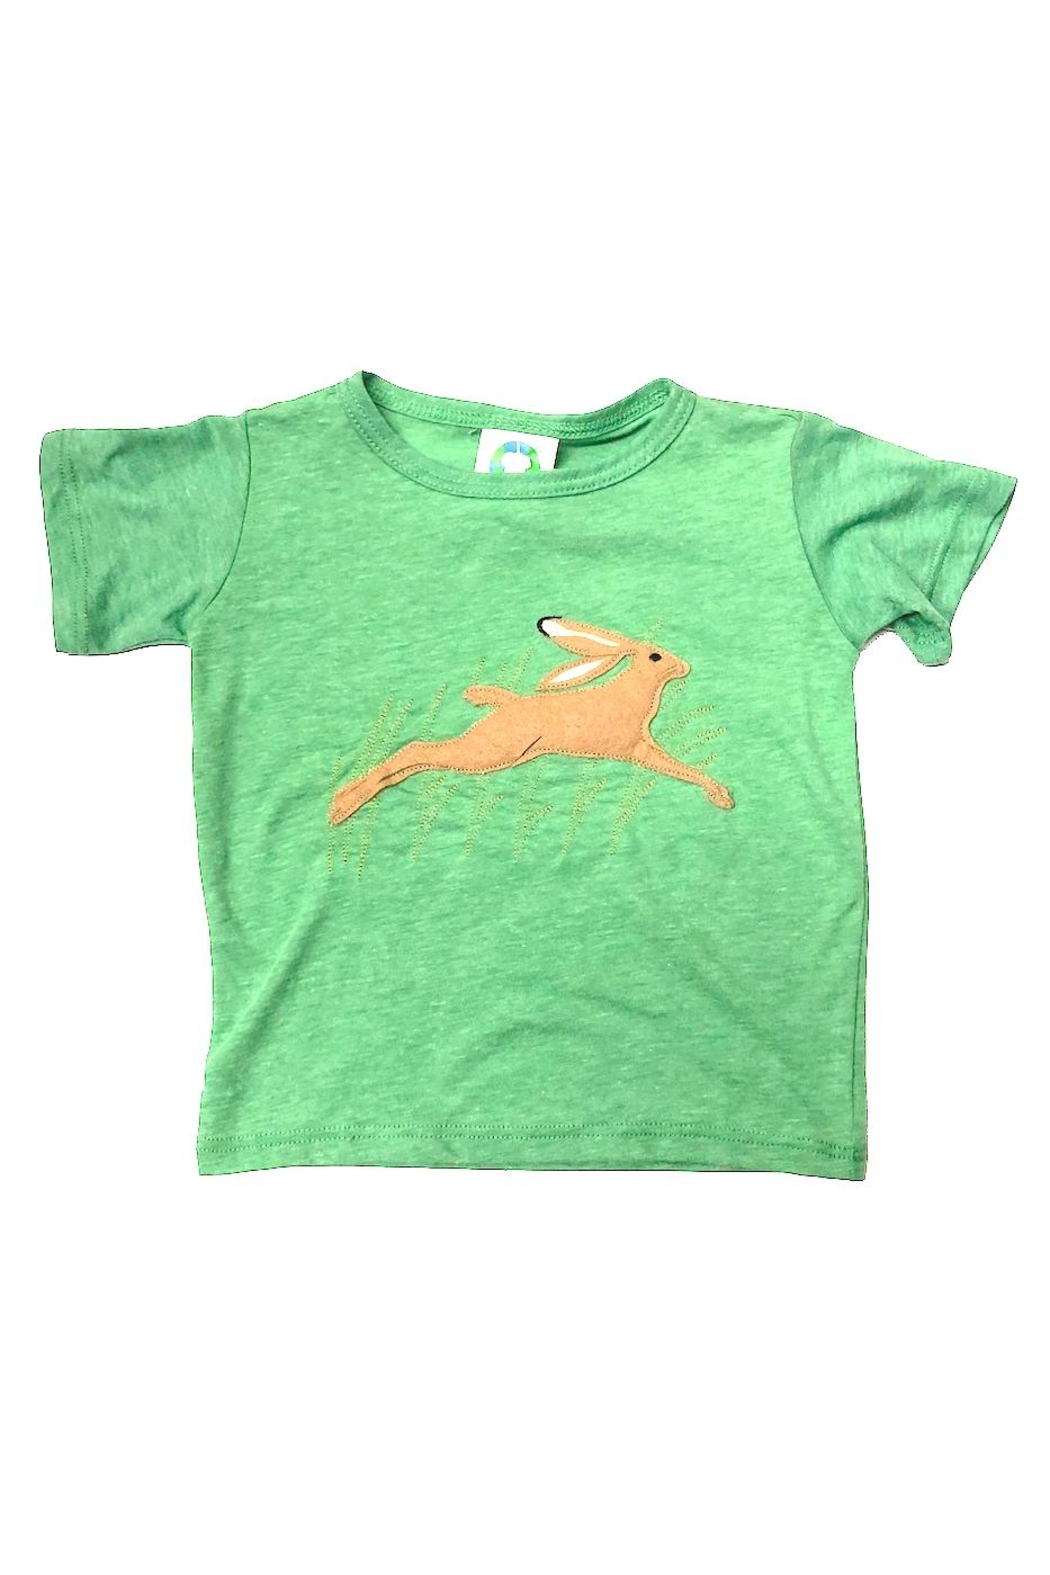 Precious Few on Earth Green Bunny T-Shirt - Main Image